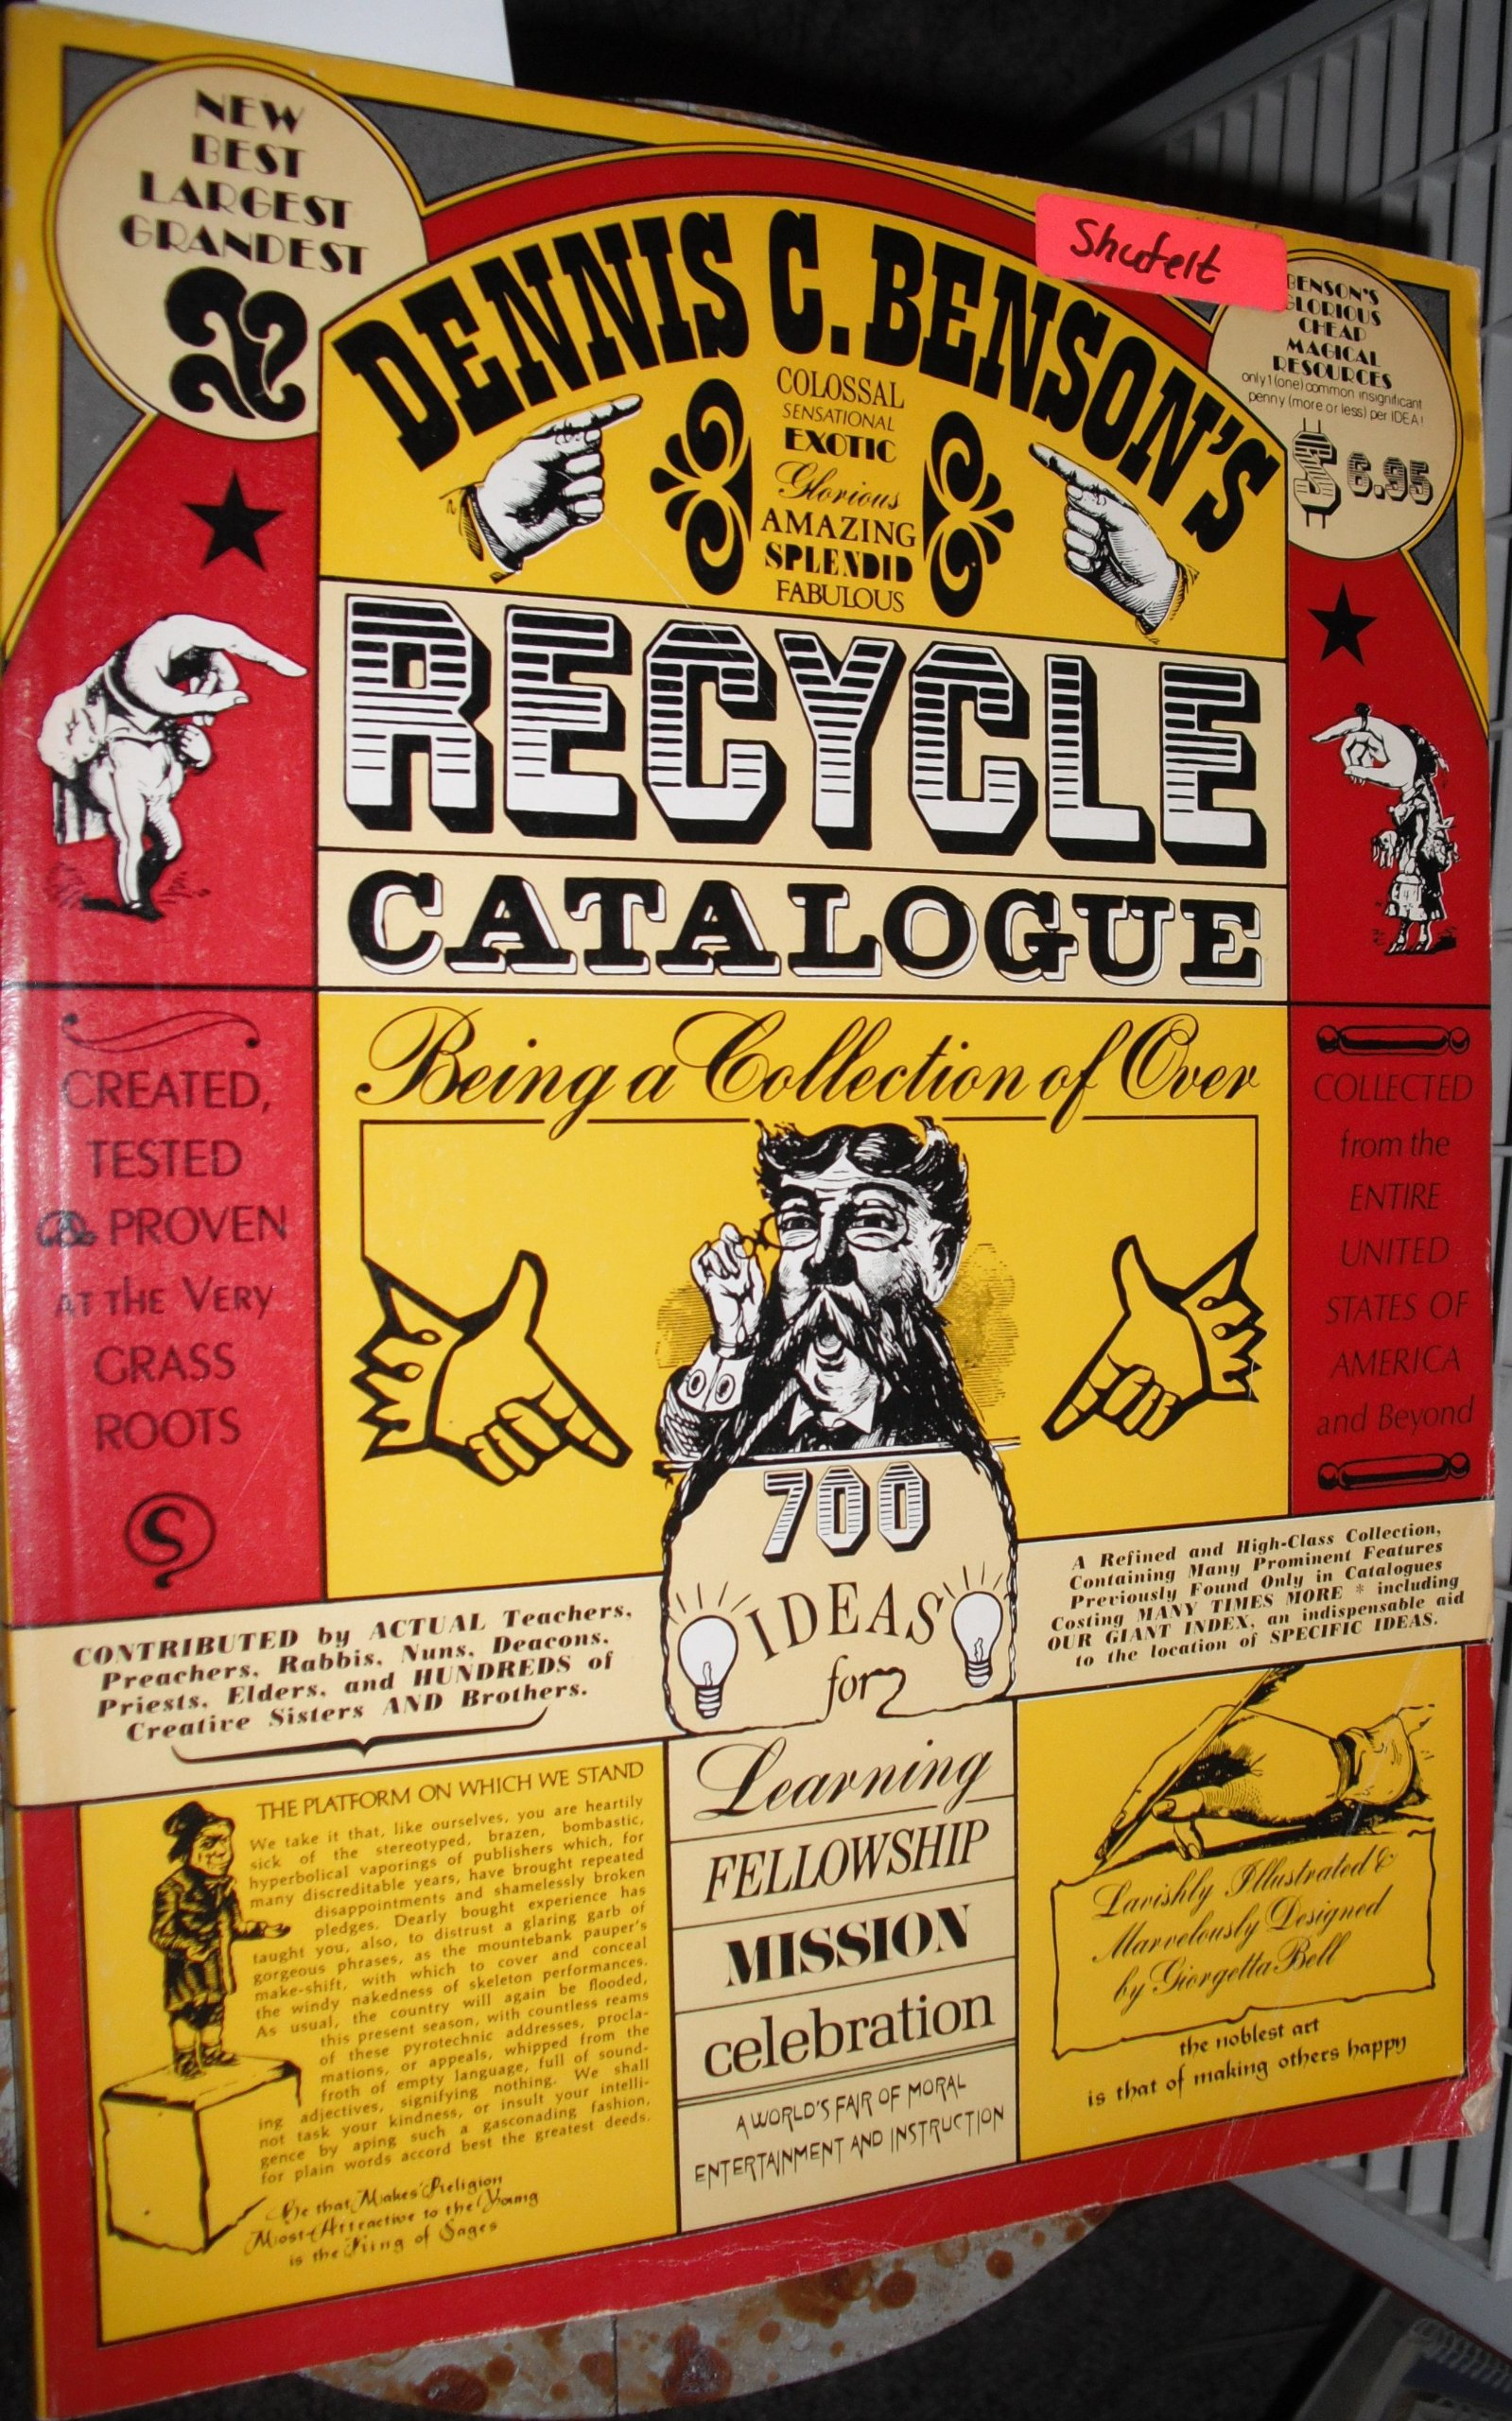 Image for Dennis C. Benson's Recycle catalogue